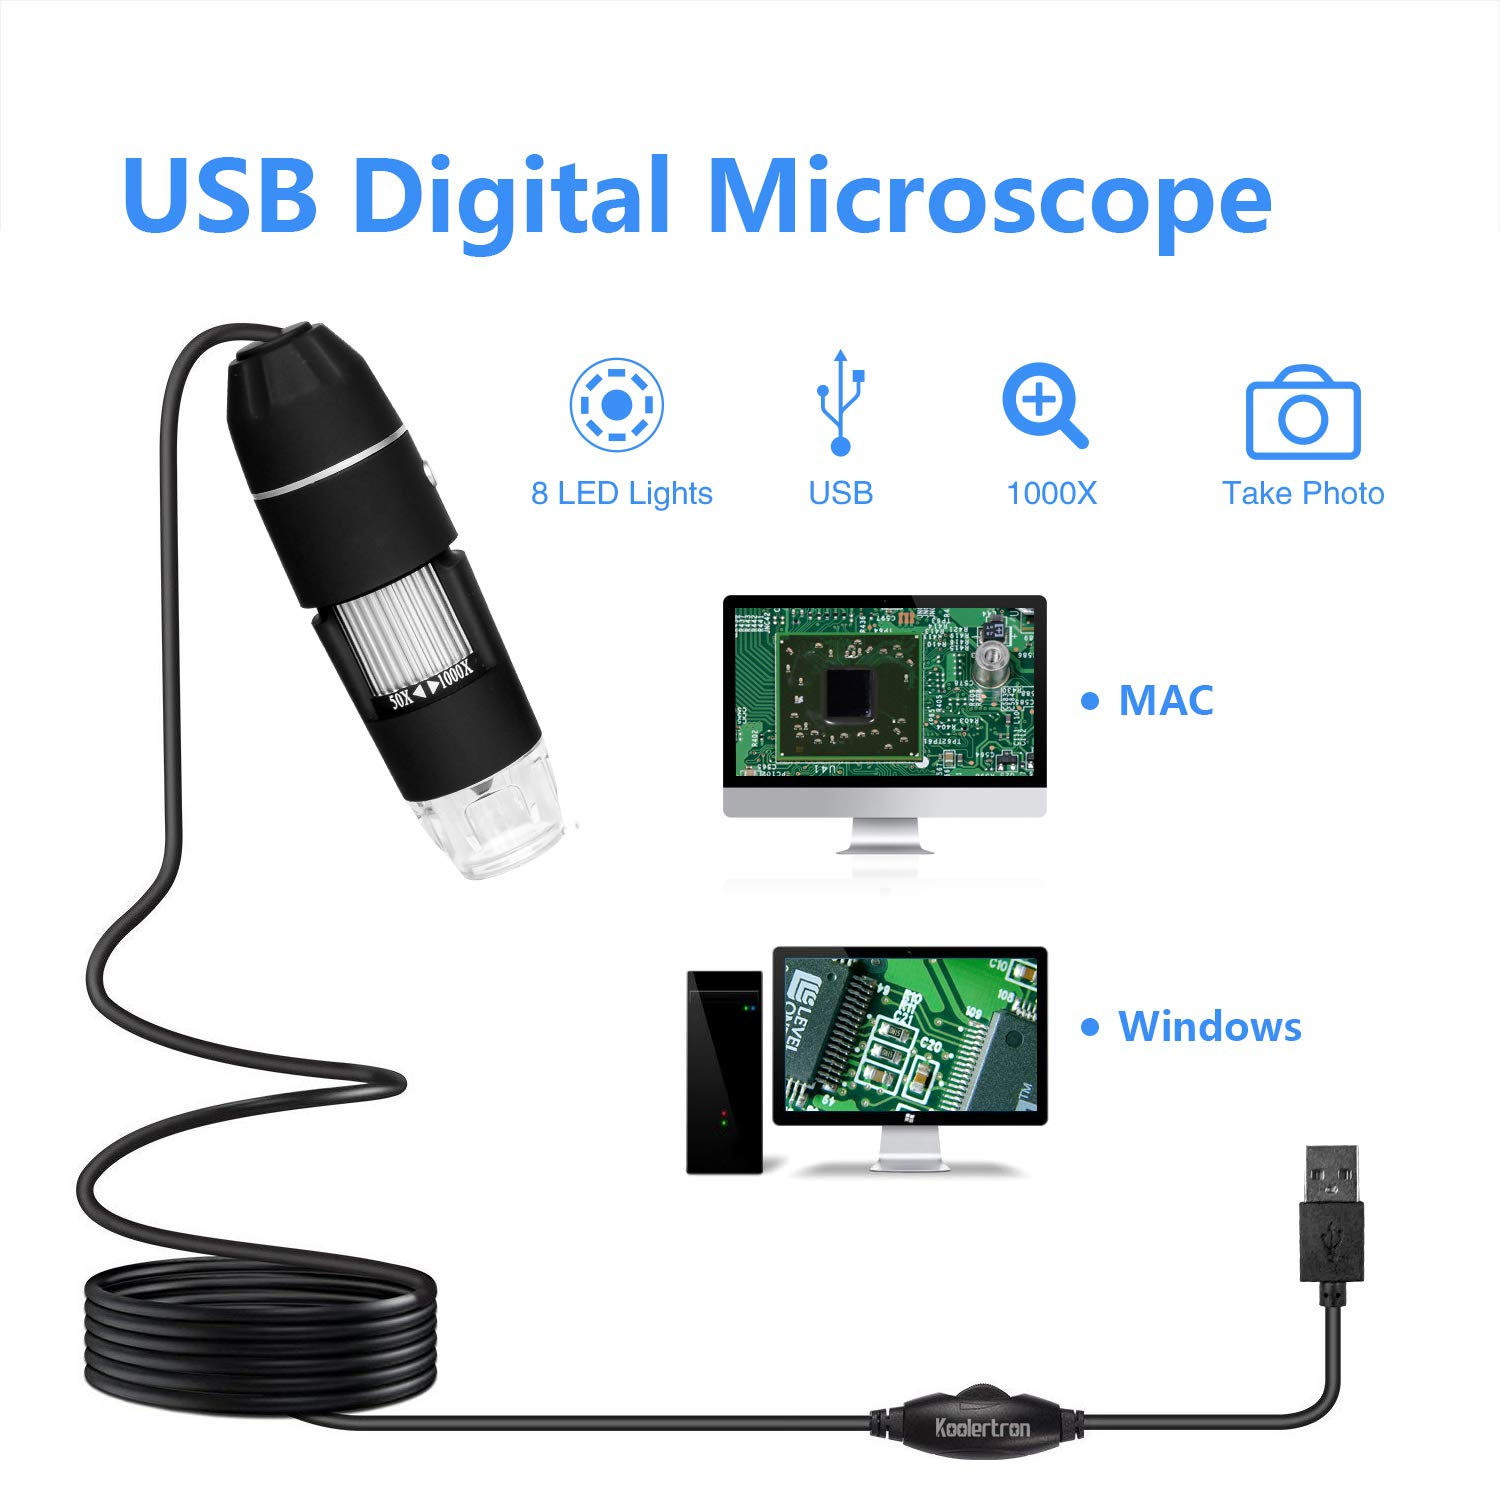 100X Magnification Opti-Tekscope OT-S7 7 Digital LCD Microscope Camera Magnifier Multi Angle Adjustable Stand Three LED Light Sources Superior 7 Inch High Definition Display